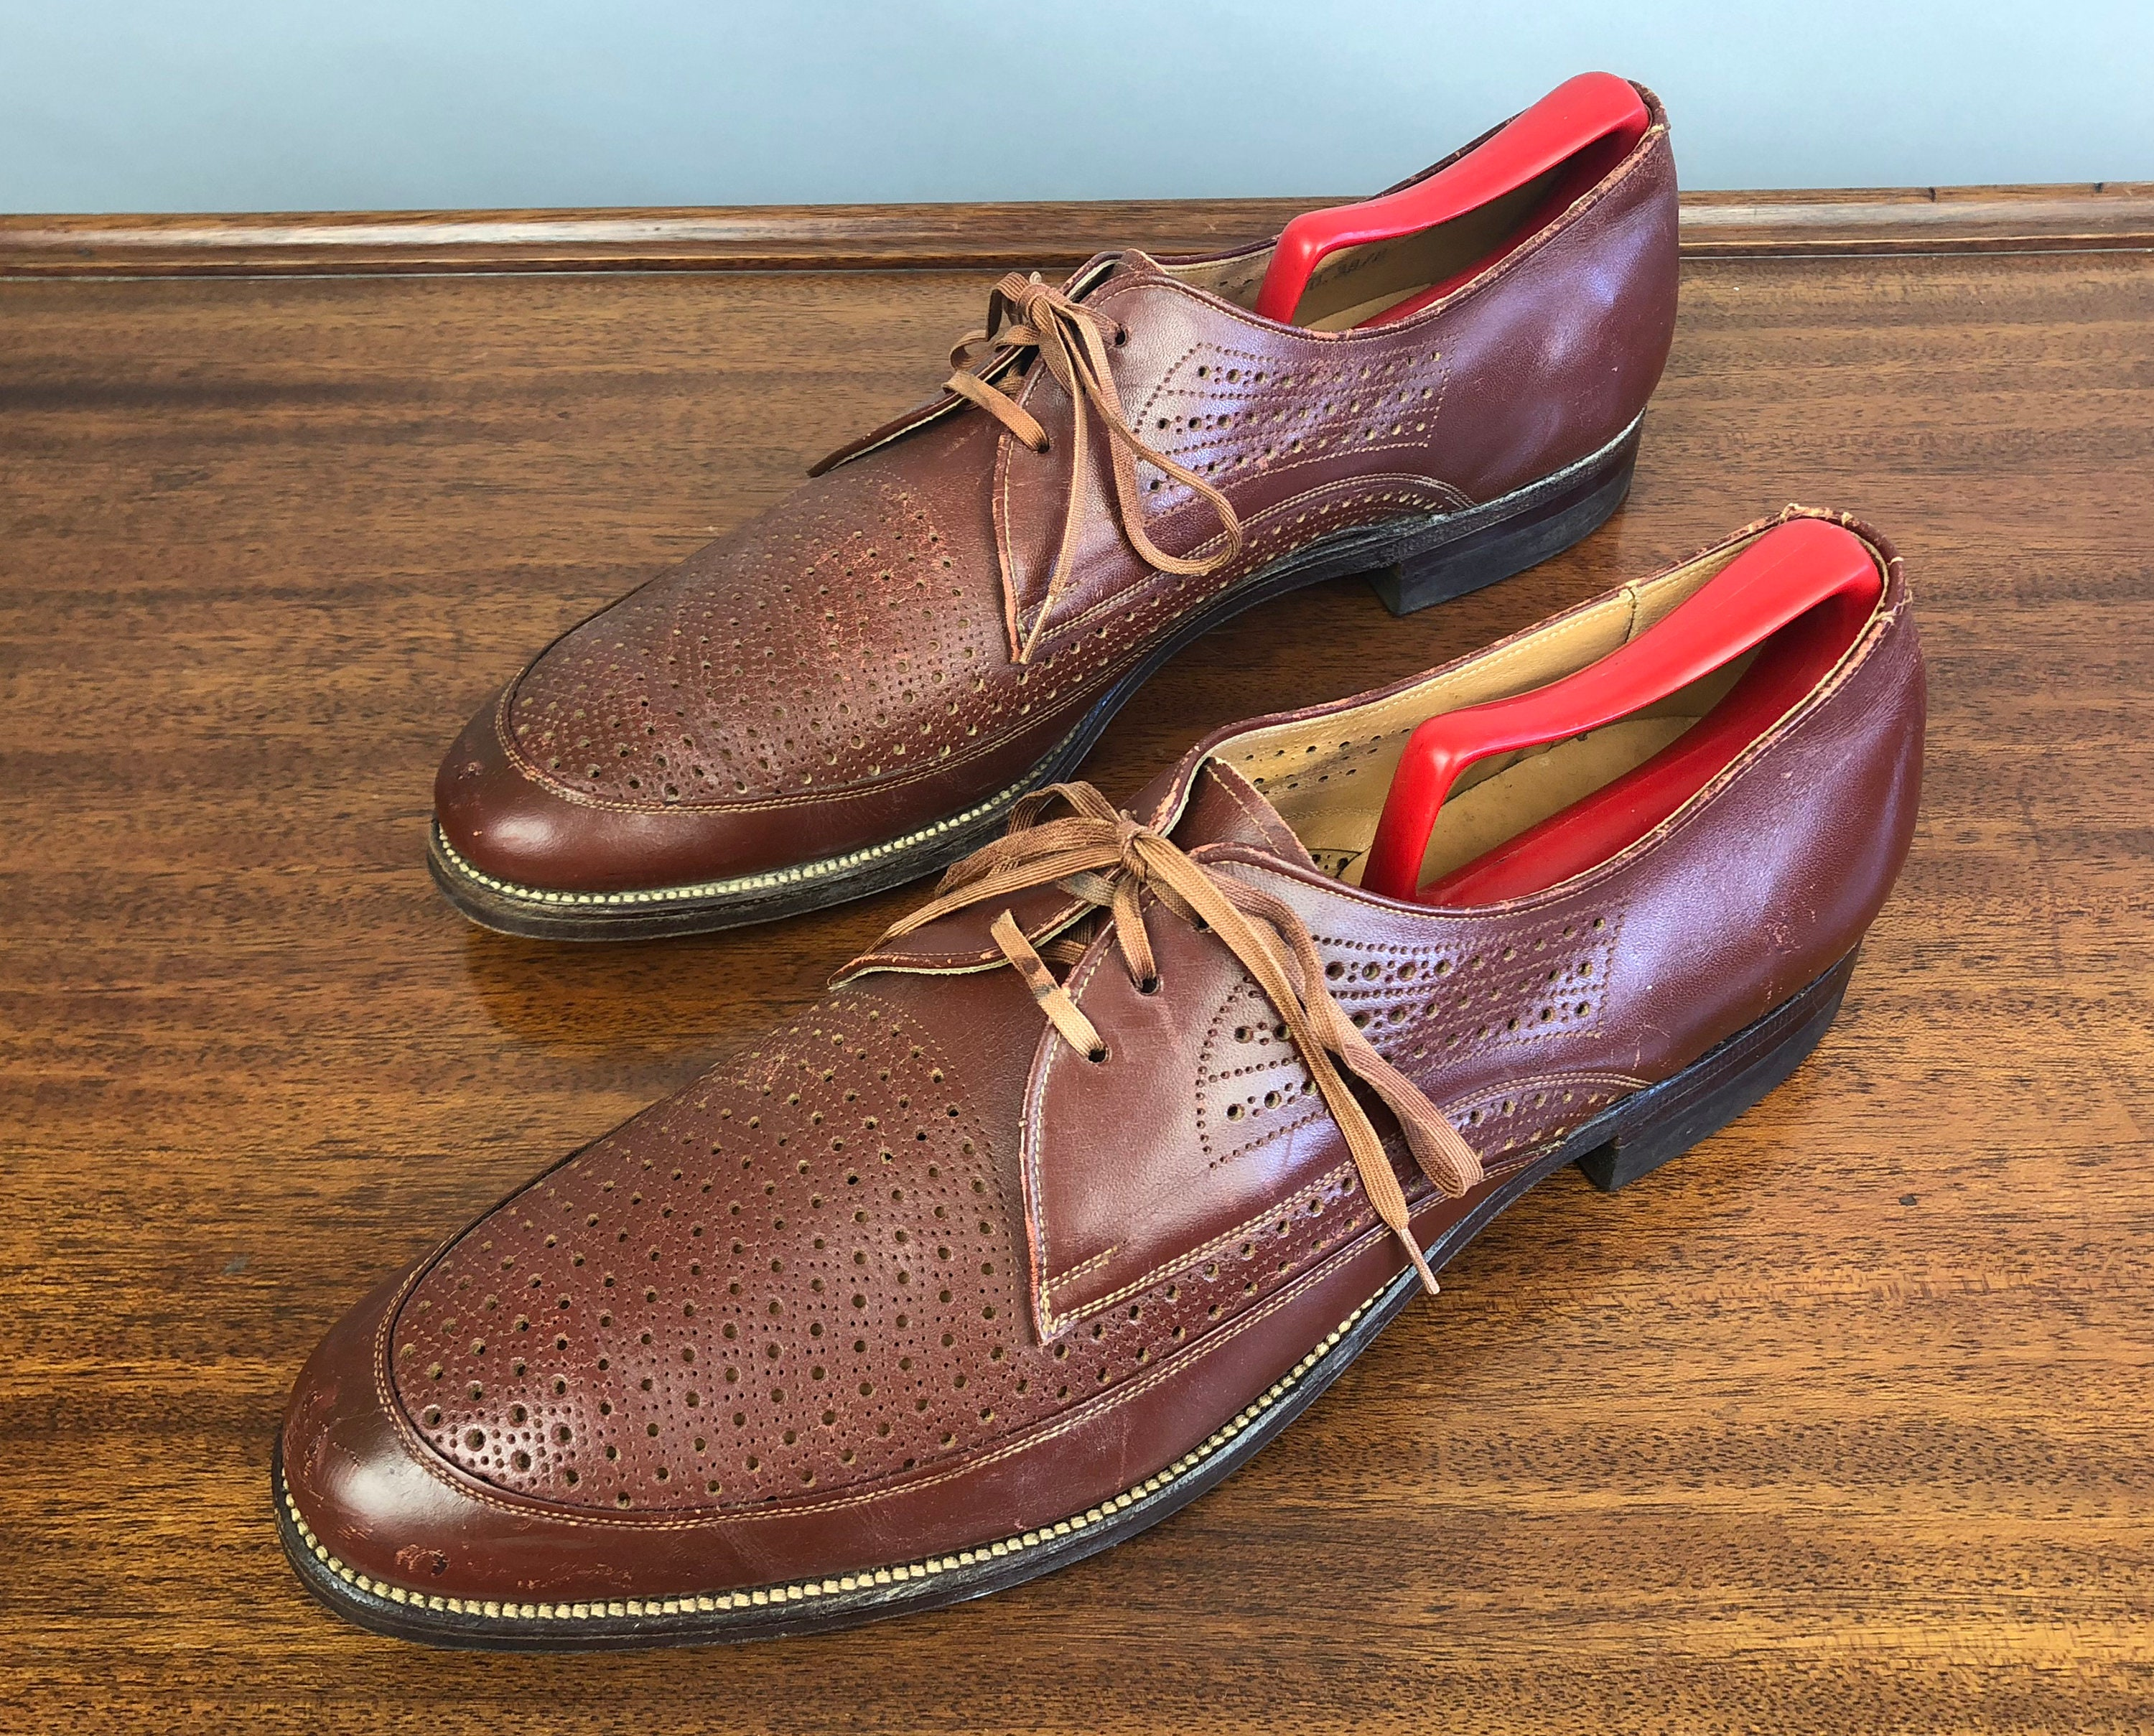 New 1930s Mens Fashion Ties 1930S Ventilated Broguing Oxfords  Vintage Rare 30S Mens Gingerbread Brown Leather Shoes With Apron Toe By The Roblee Shoe Size 11.5 $22.00 AT vintagedancer.com